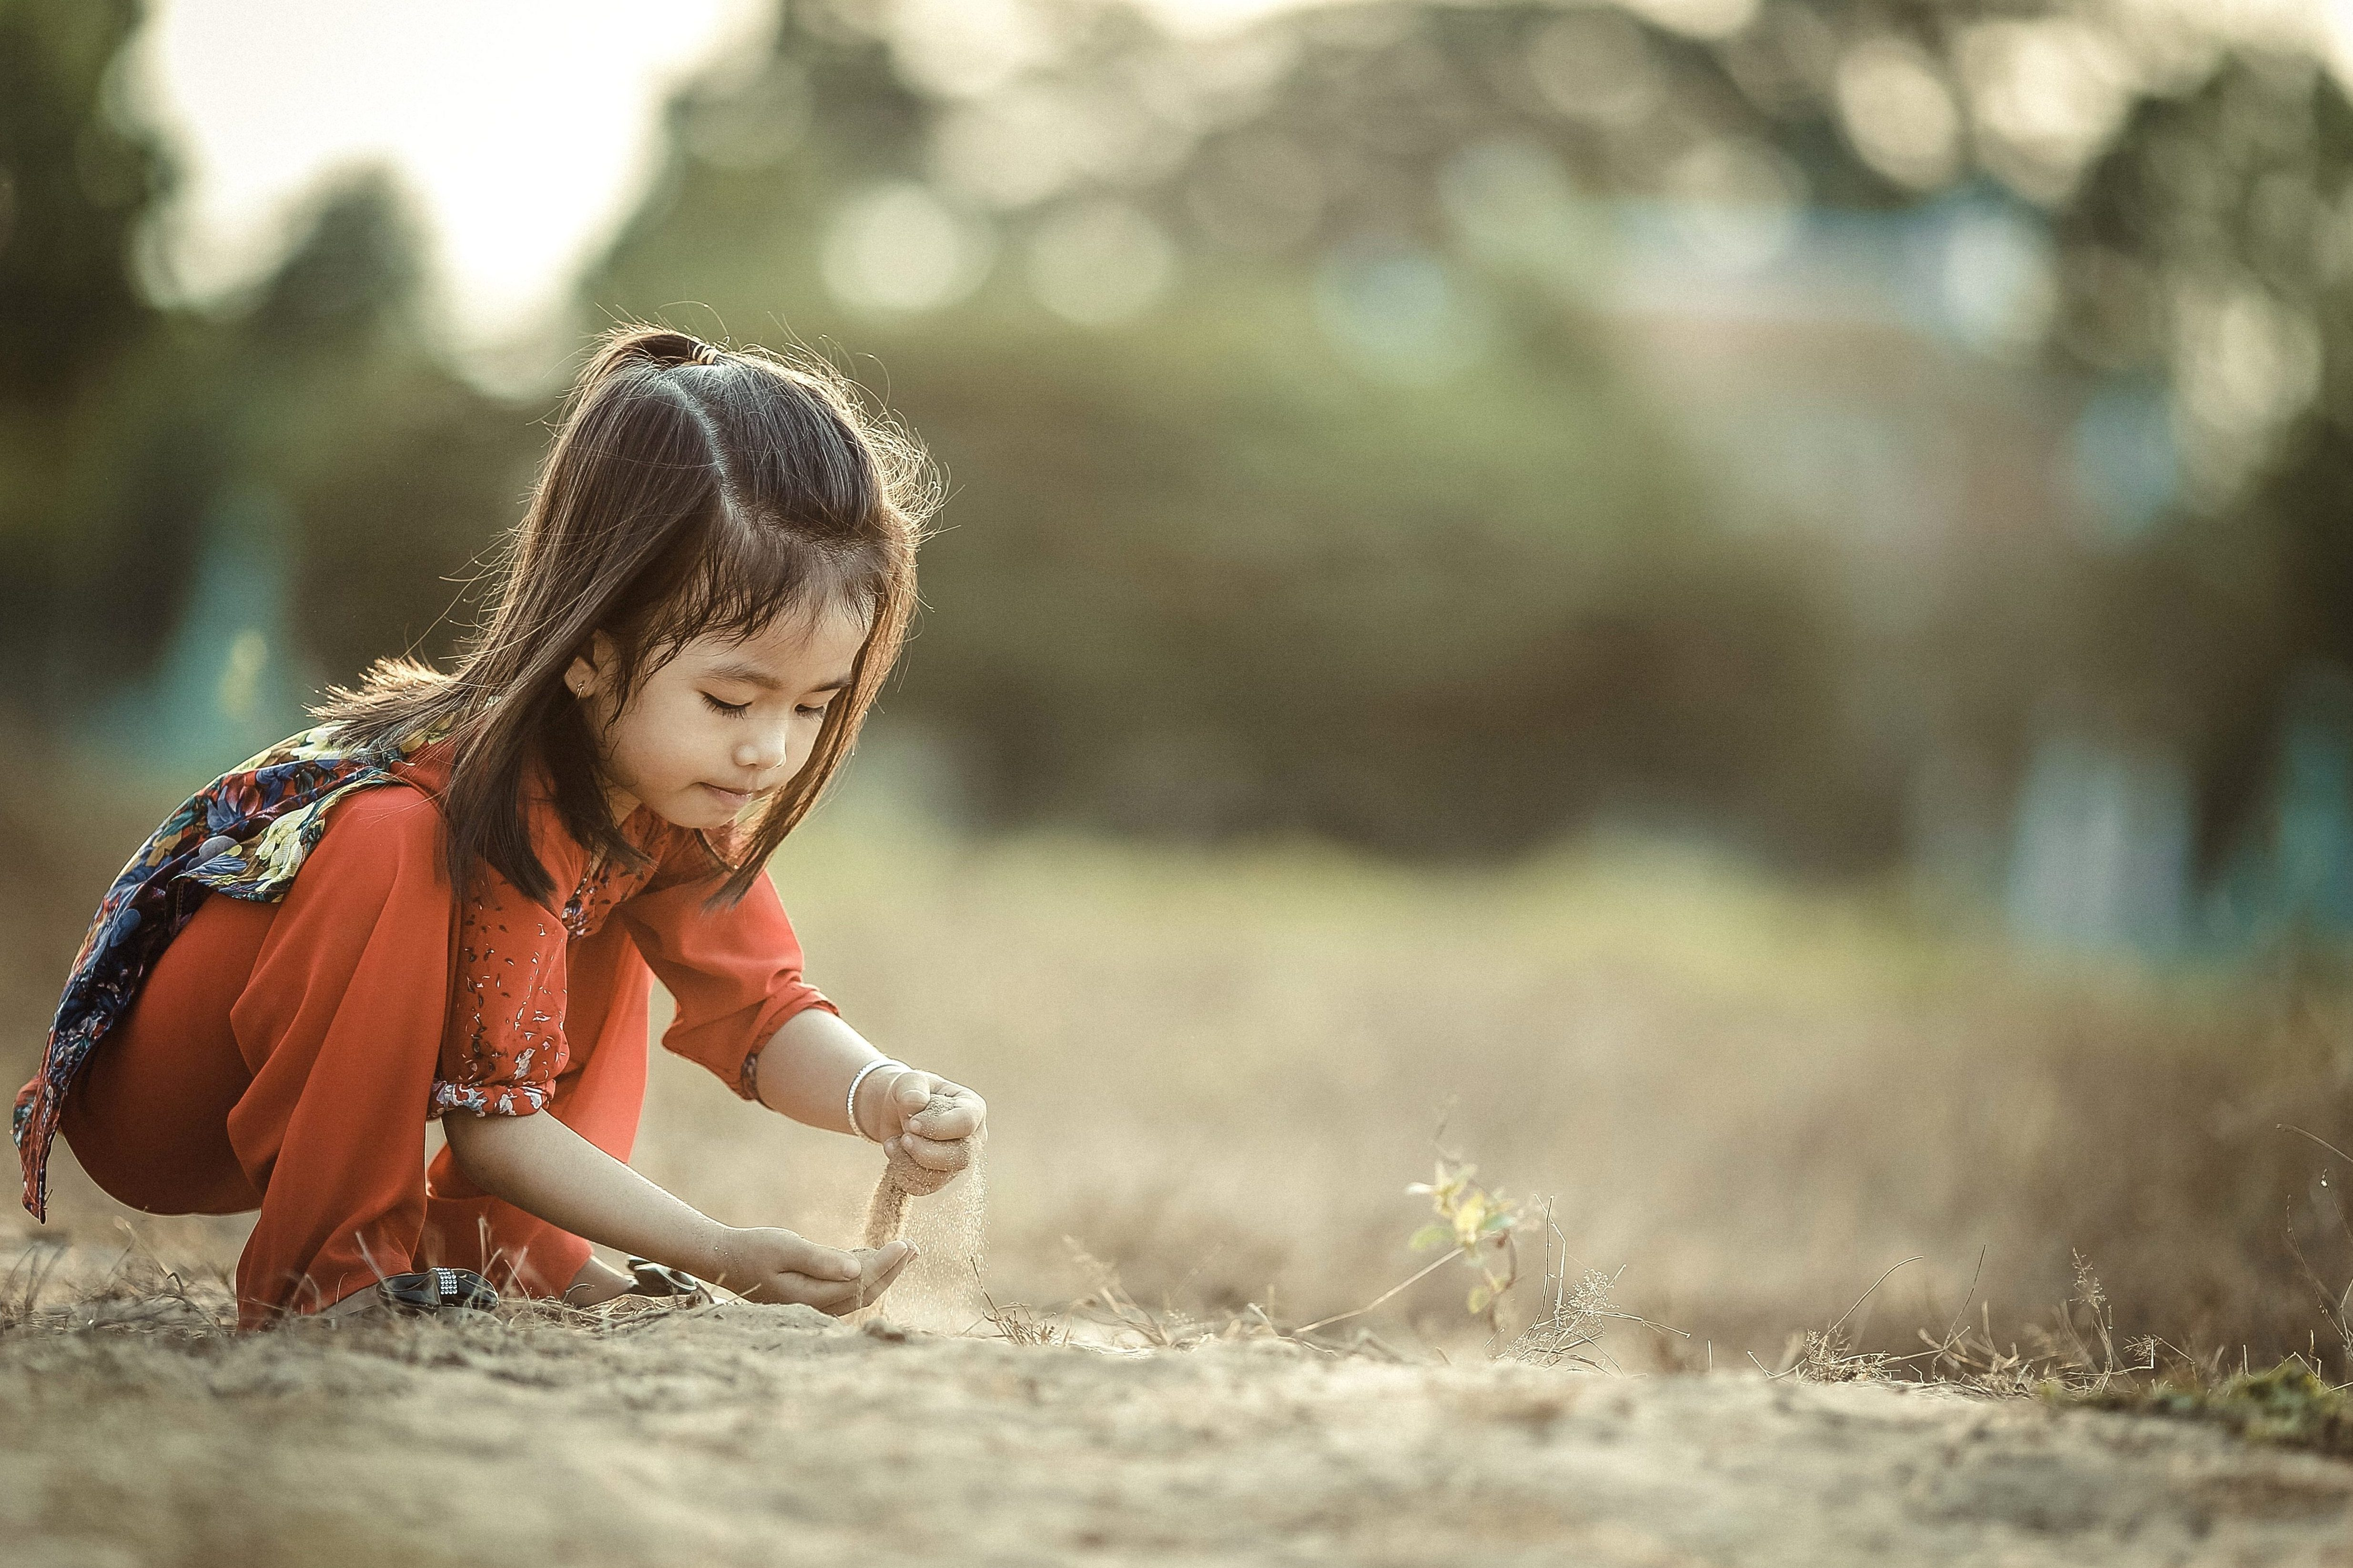 Free picture: girl, child, pretty girl, sand, childhood